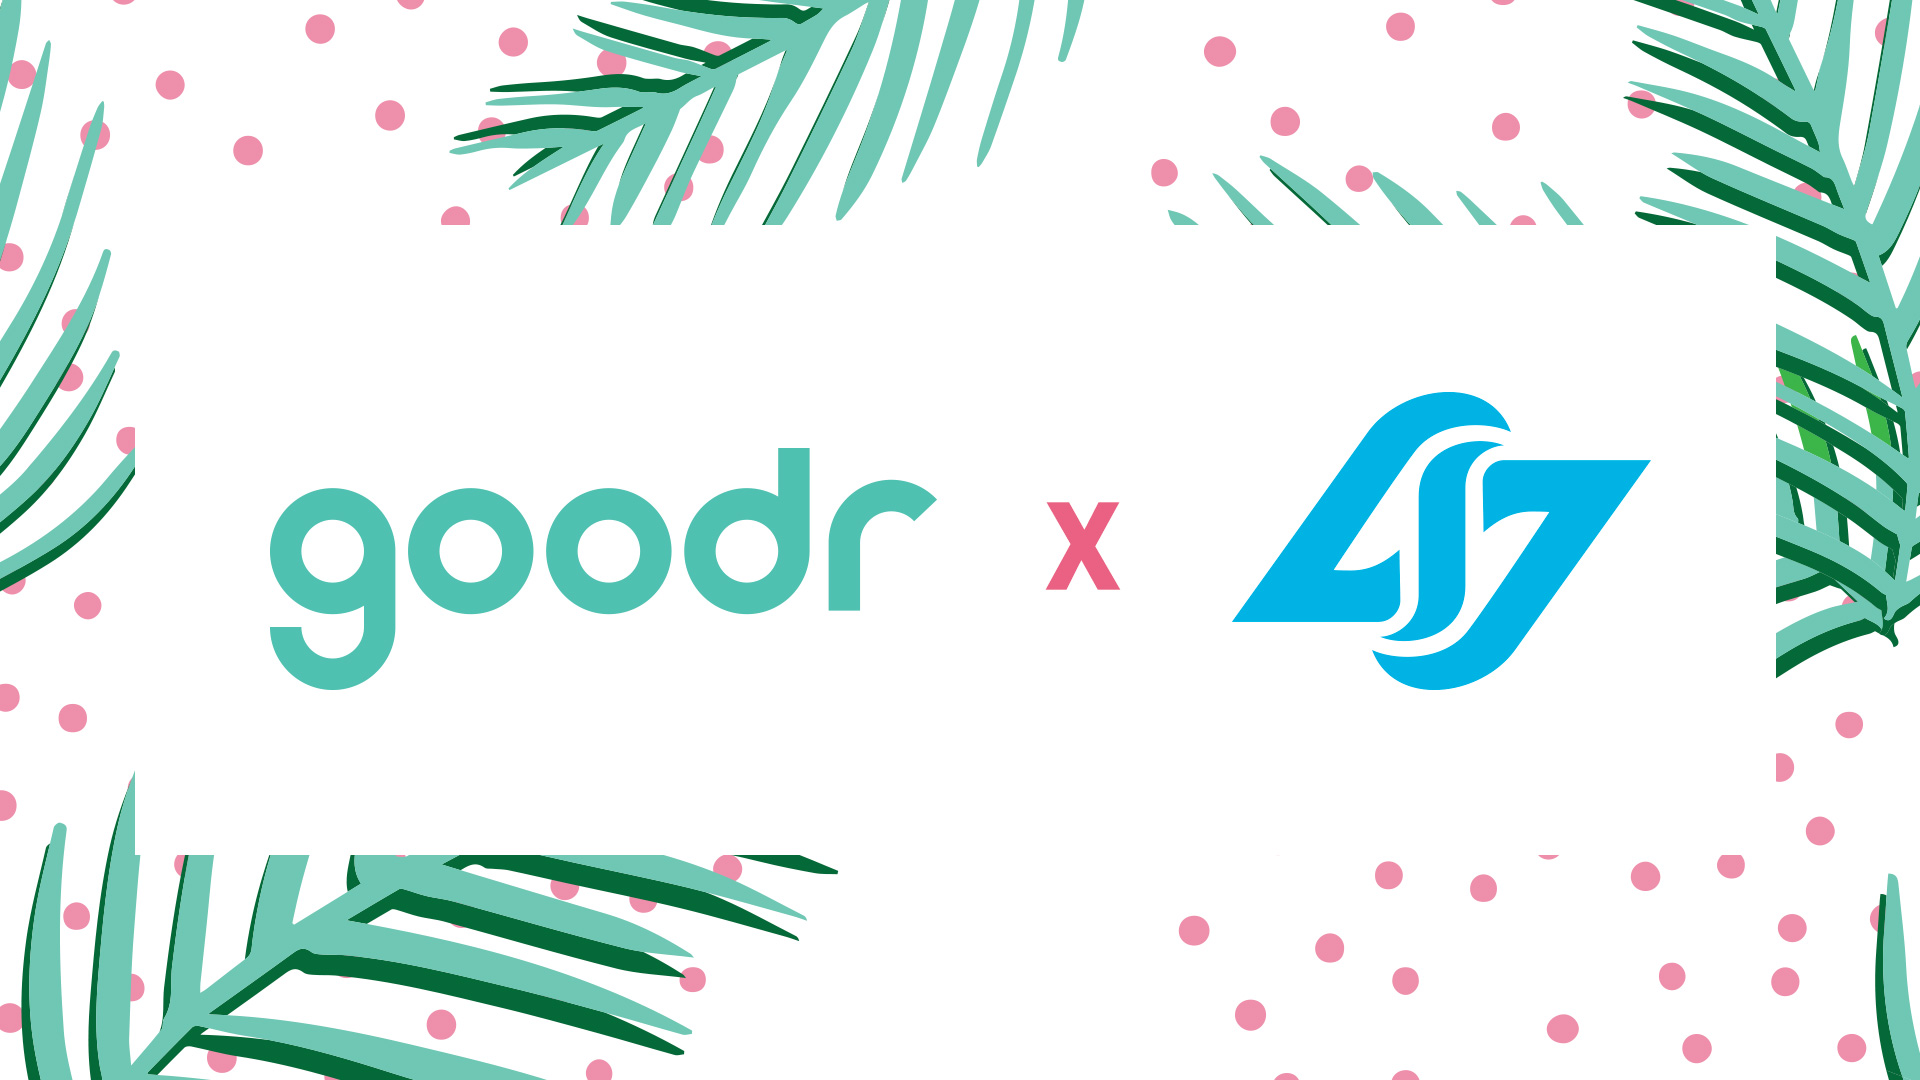 CLG x goodr partnership